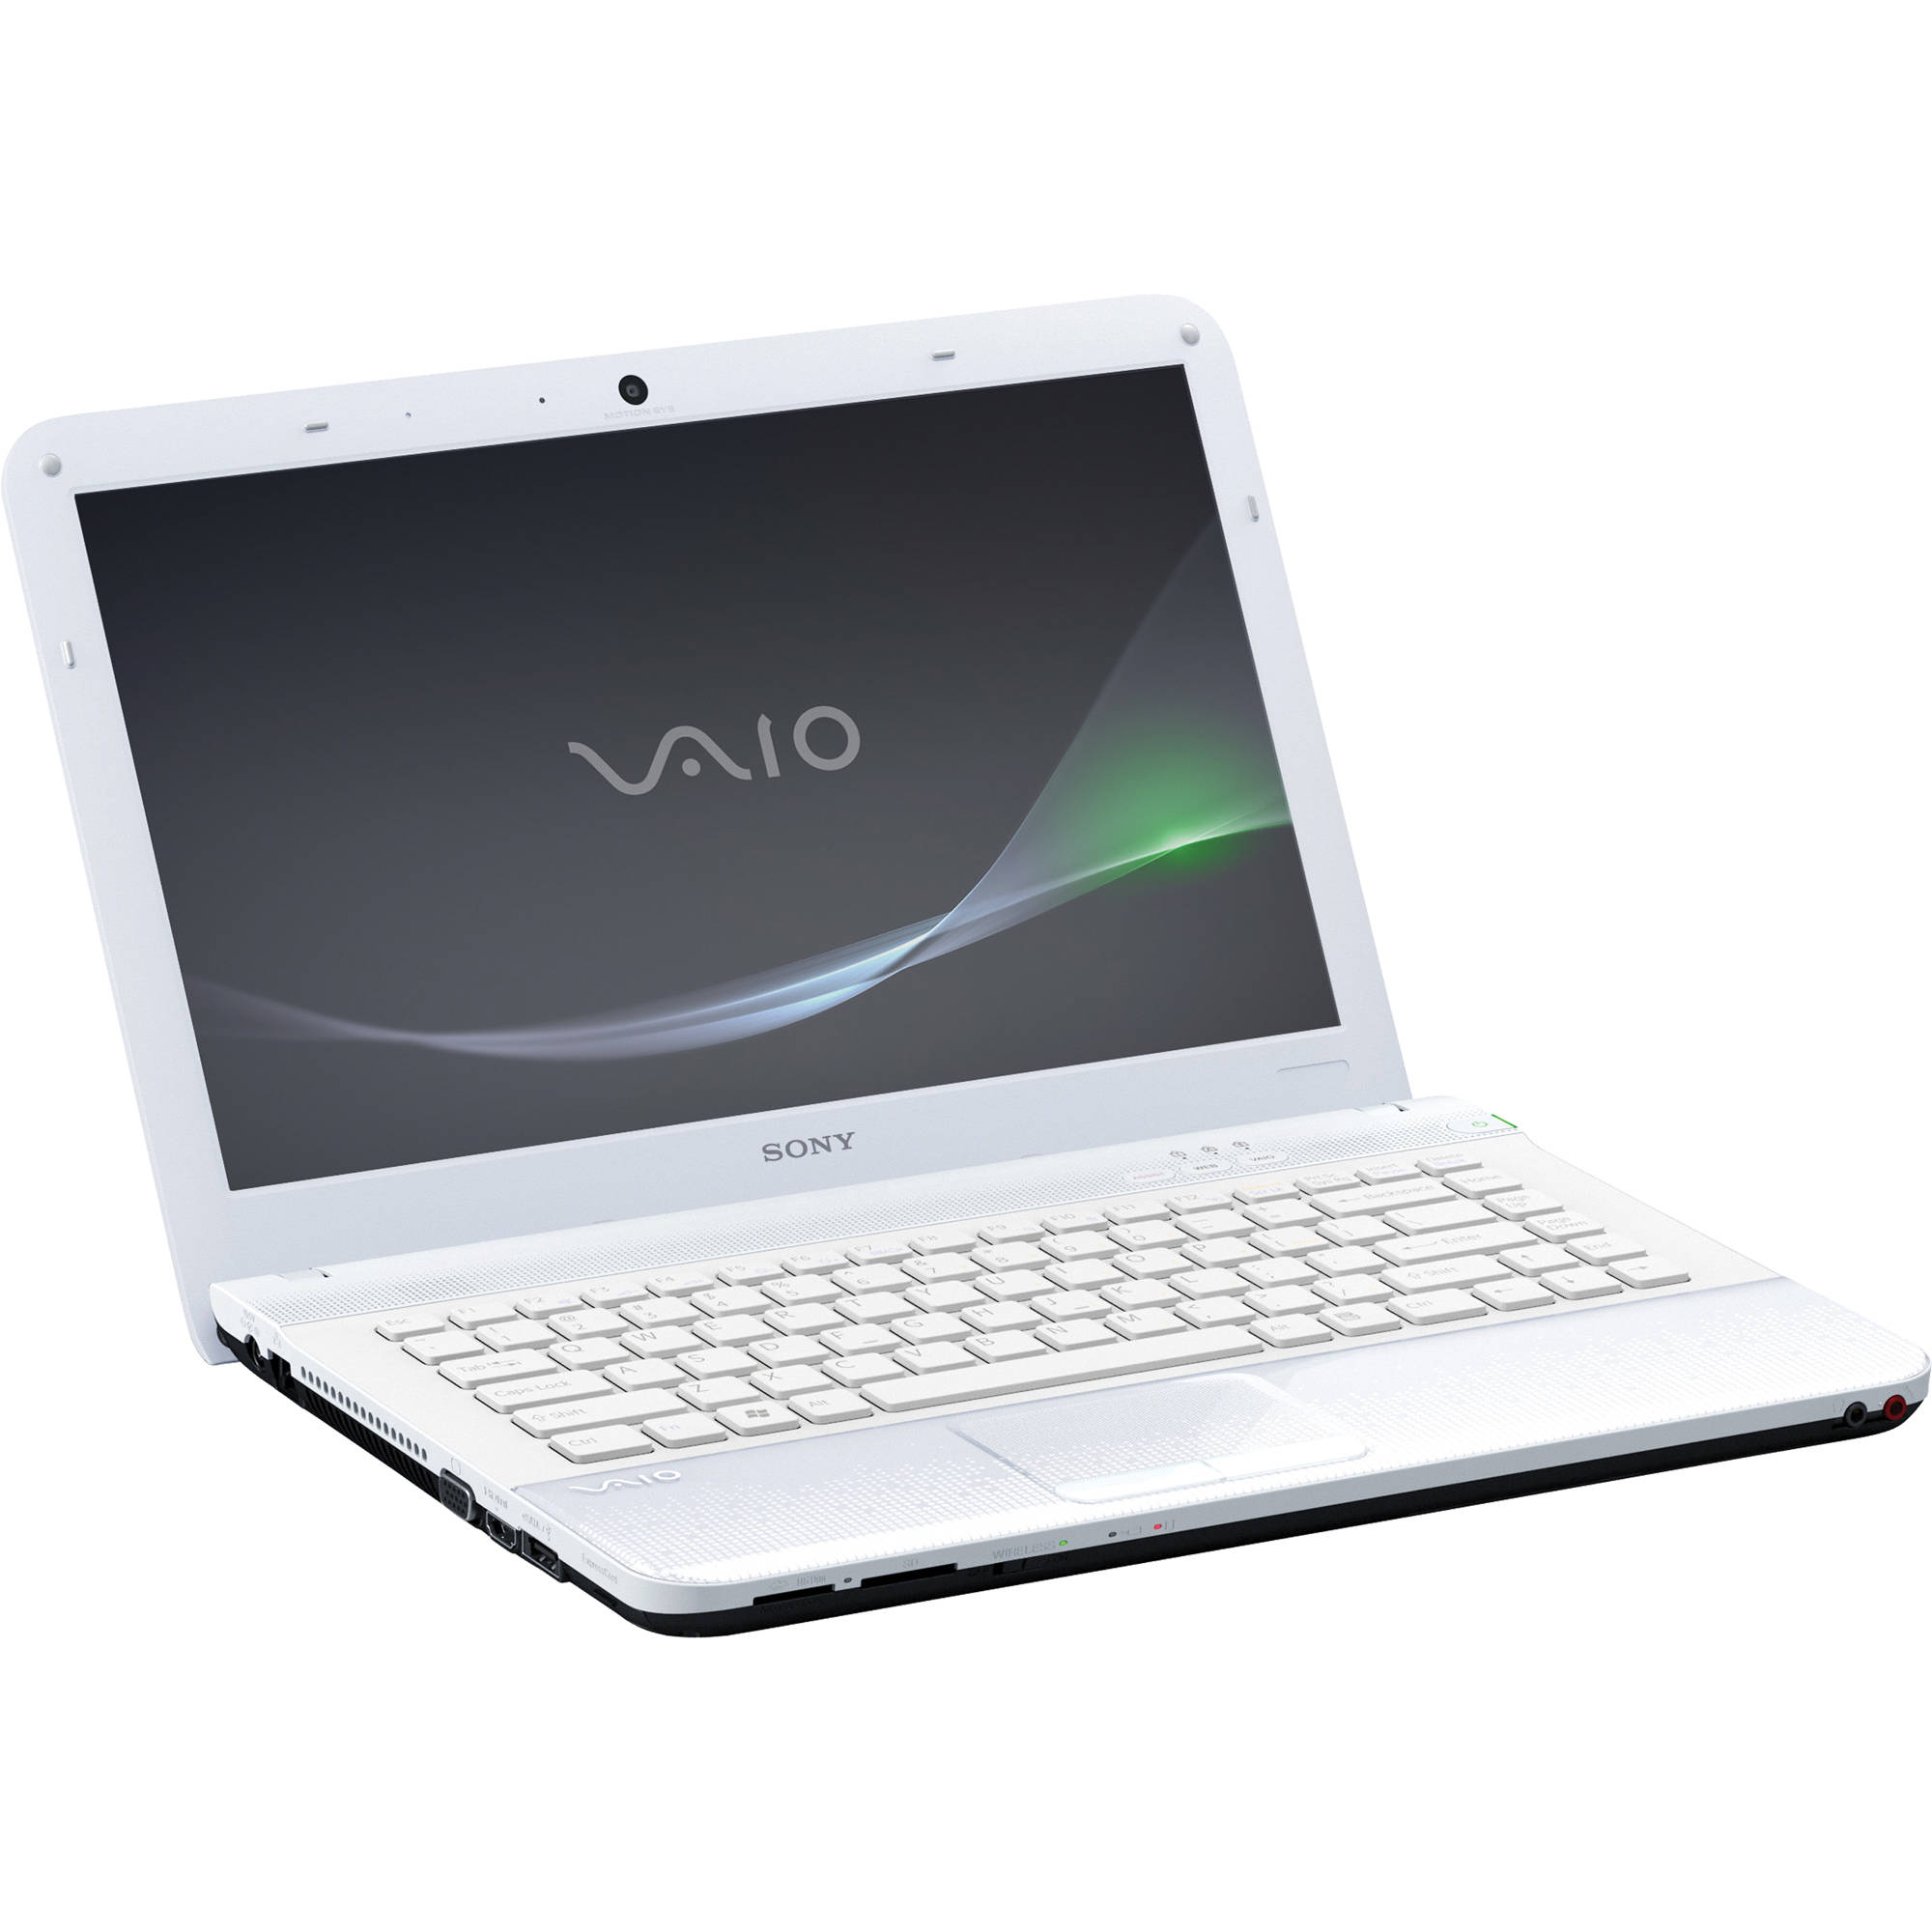 Sony Vaio VPCEG33FX/B Image Optimizer Drivers for Windows 7